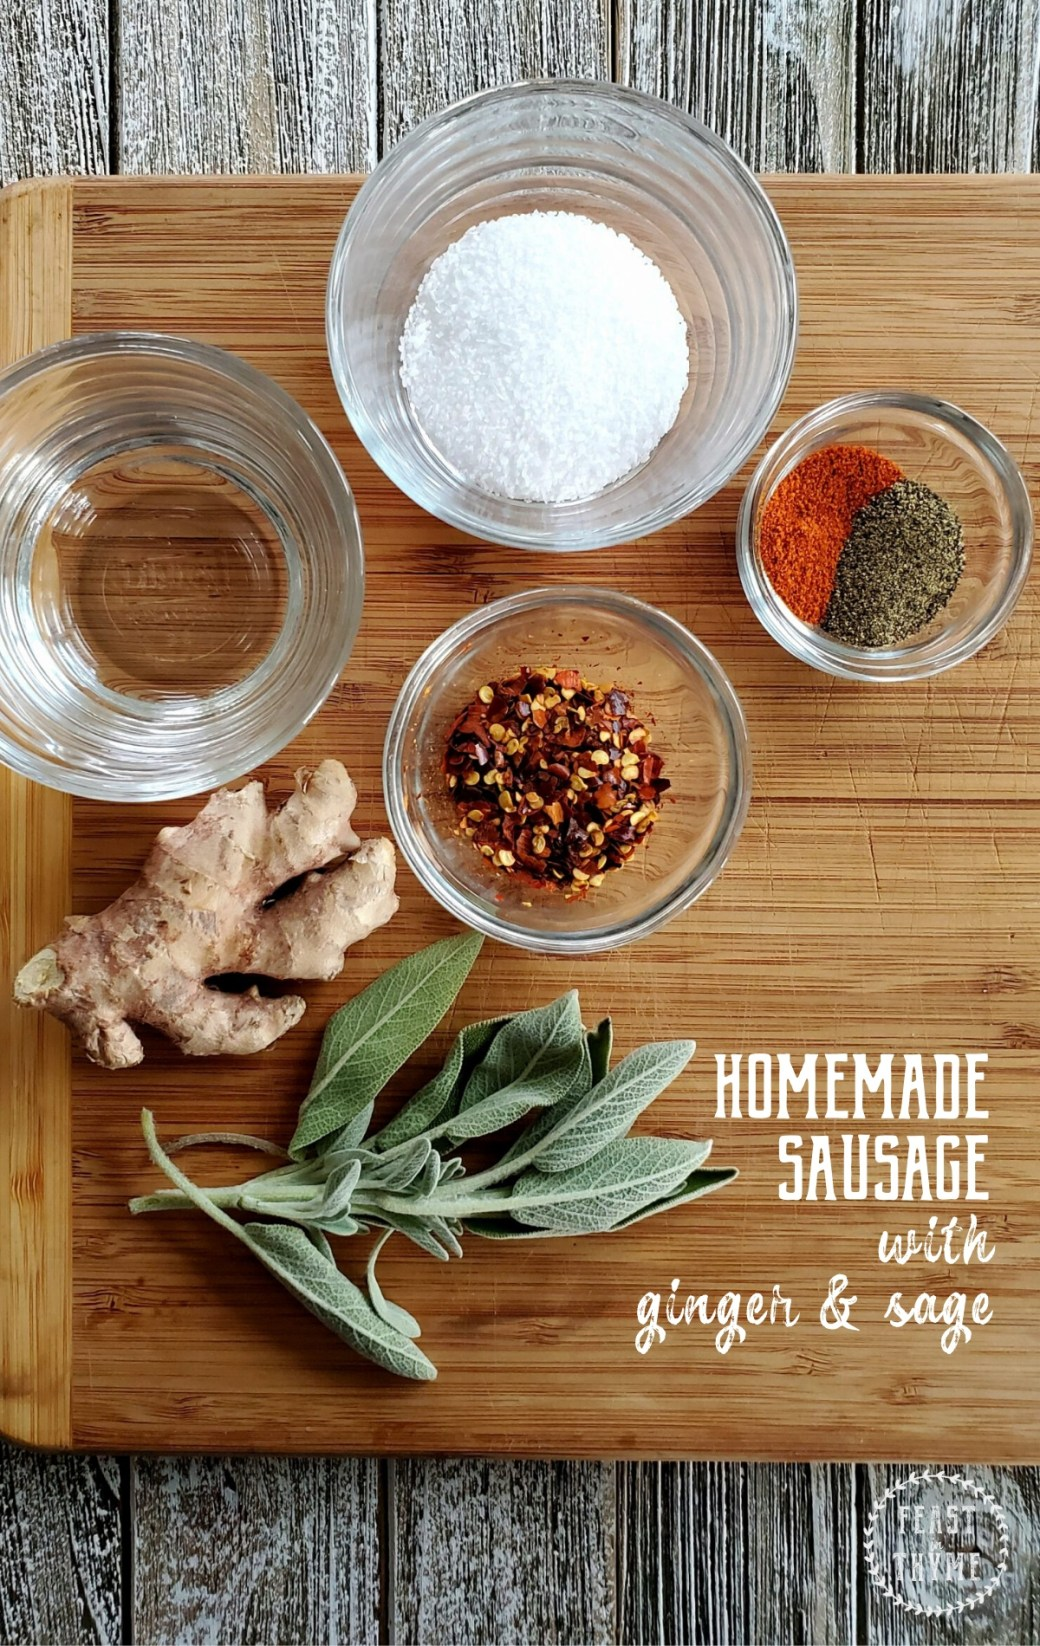 Making your own homemade sausage blend is so simple it doesn't even feel like a recipe! [Low FODMAP, Gluten Free] #sausage #fodmap #glutenfree | FeastInThyme.com